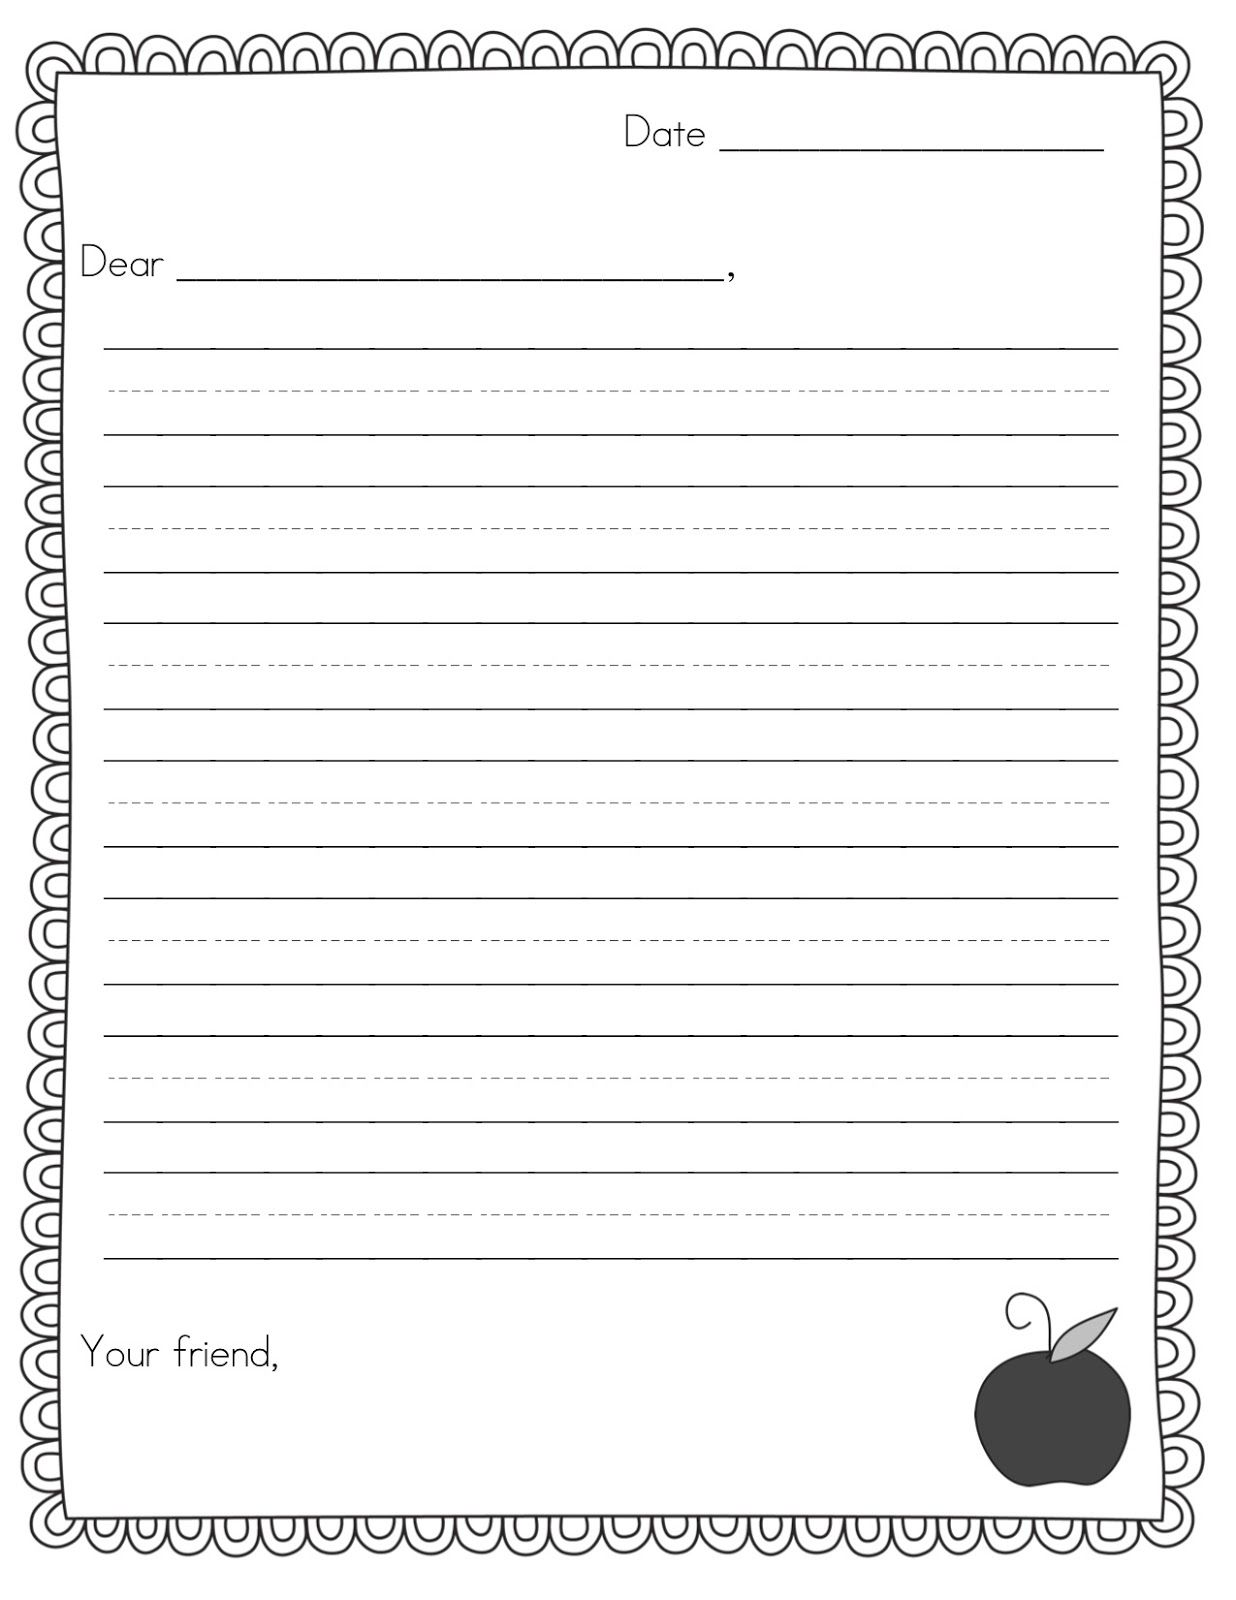 Pen Pal News Friendly Letter Freebie